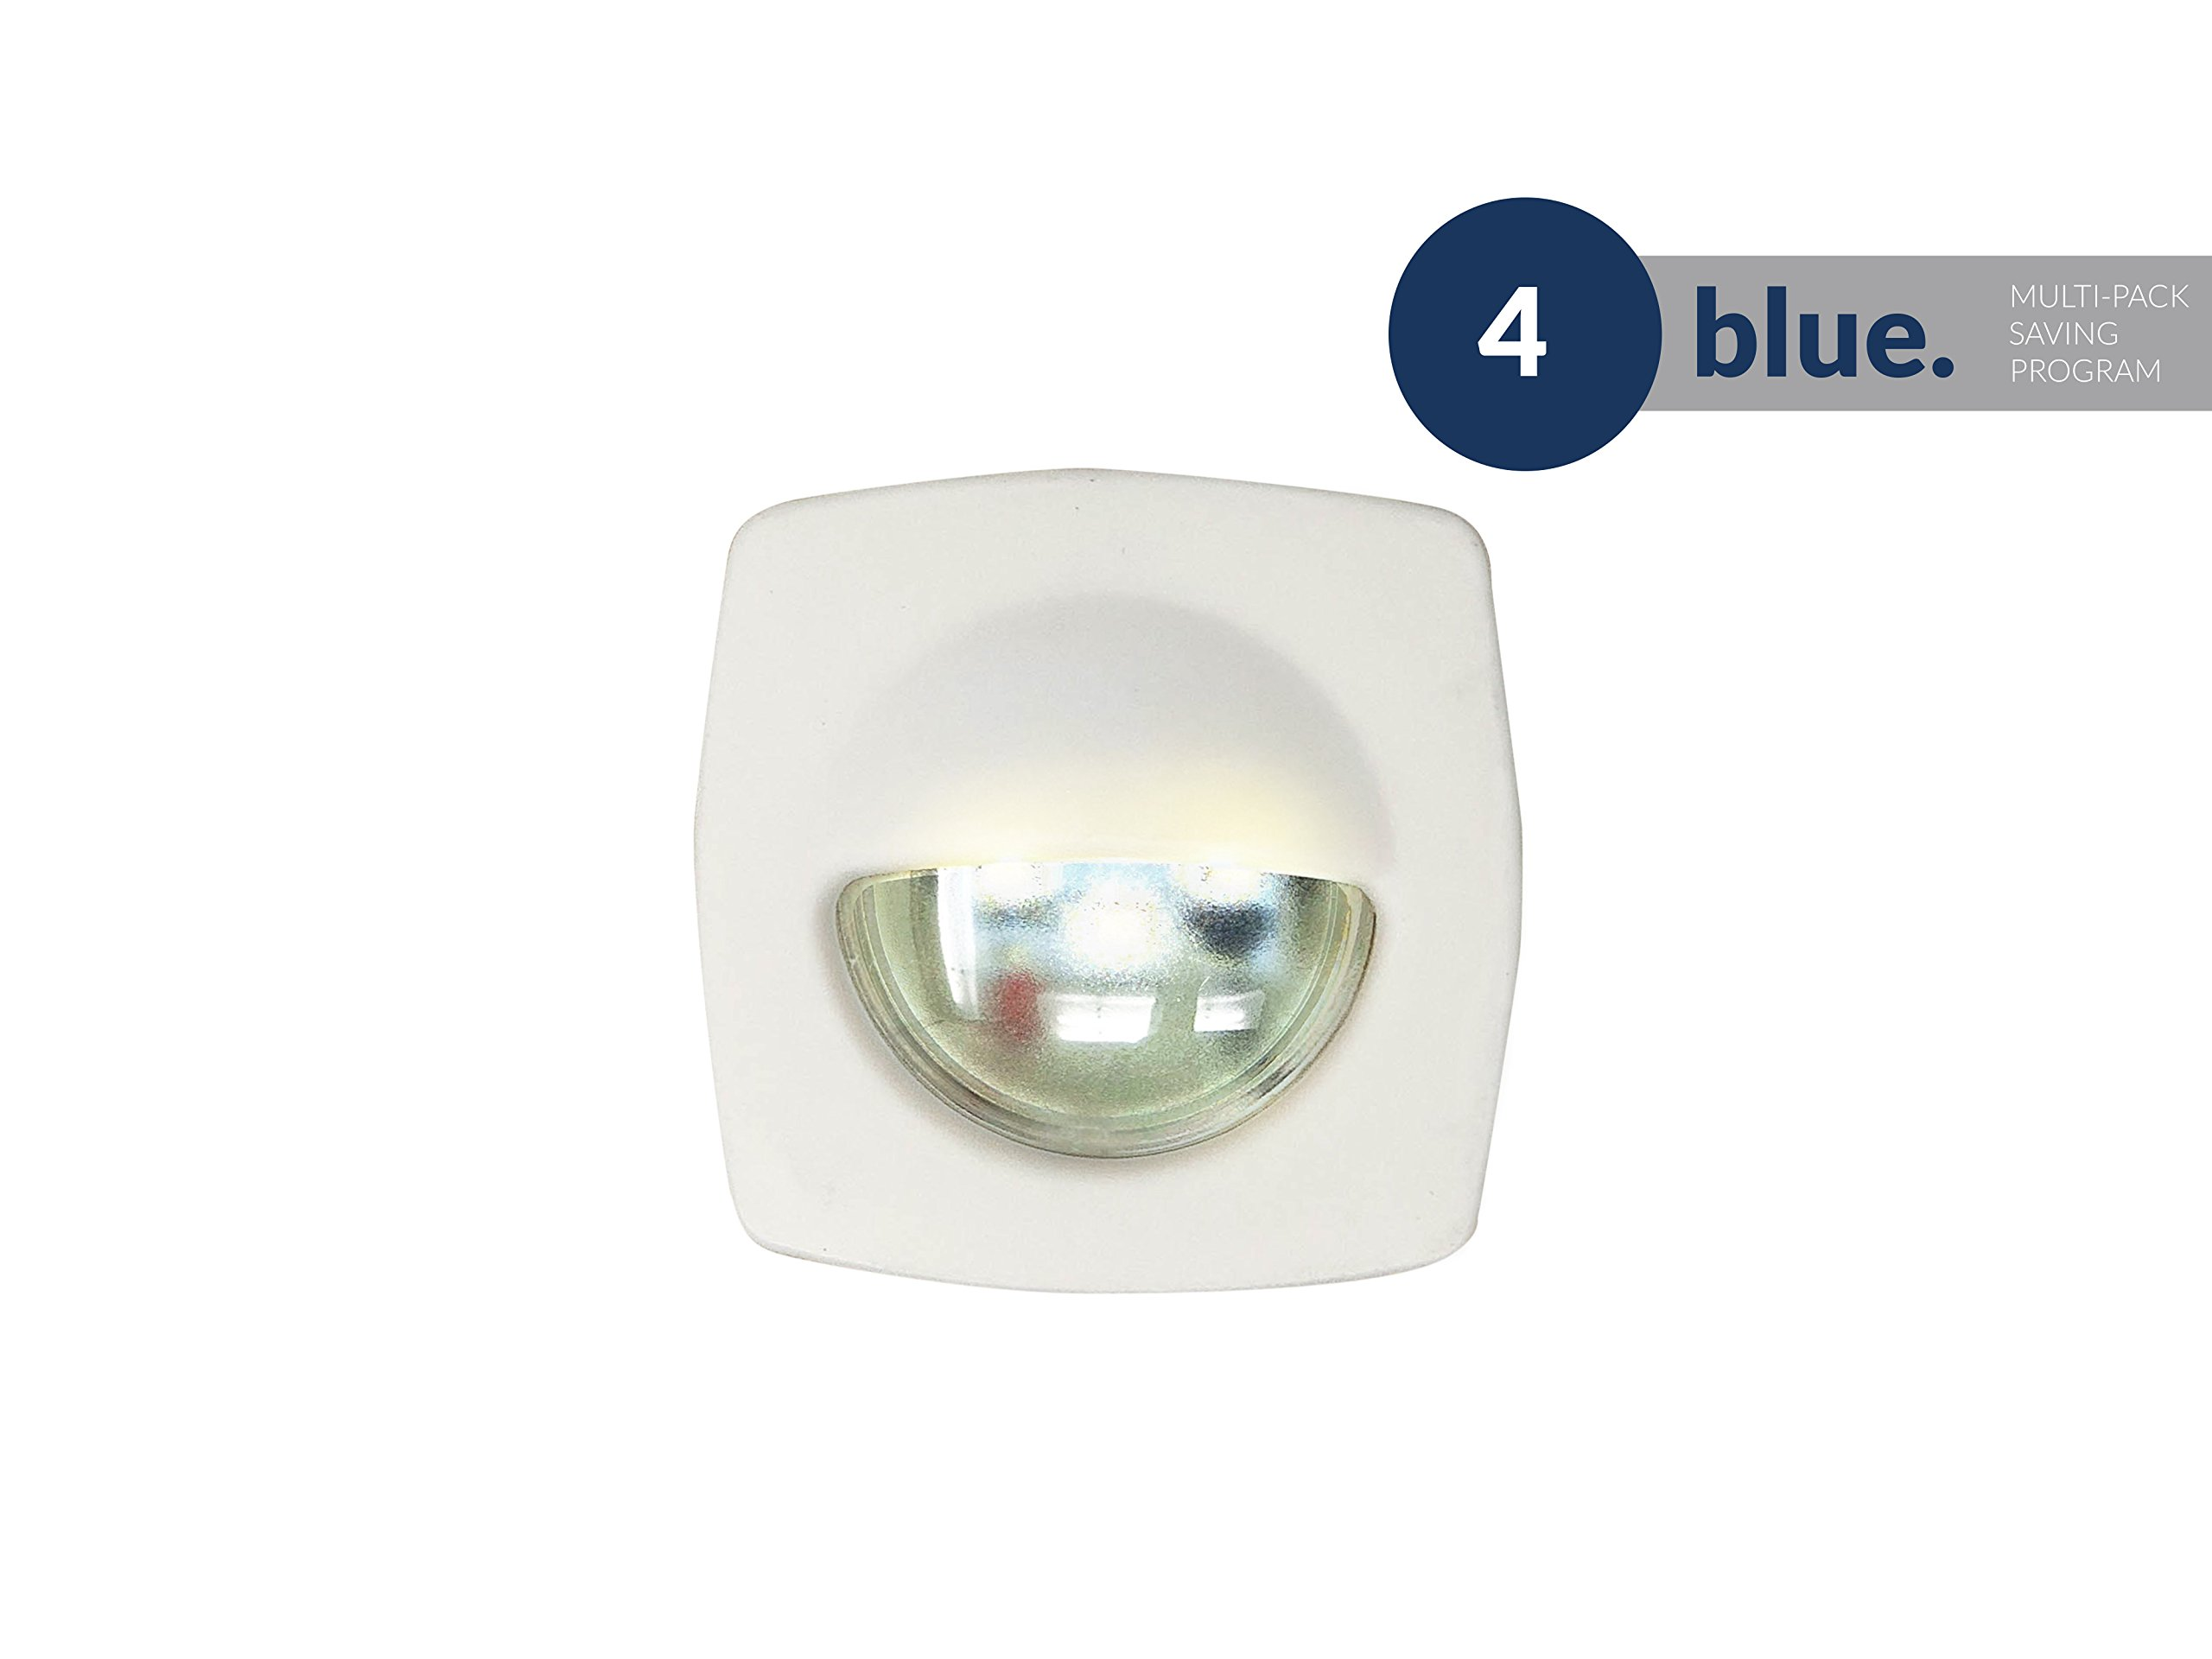 Five Oceans Cool White LED Companion Way Light, 4 Pack - BC 3994